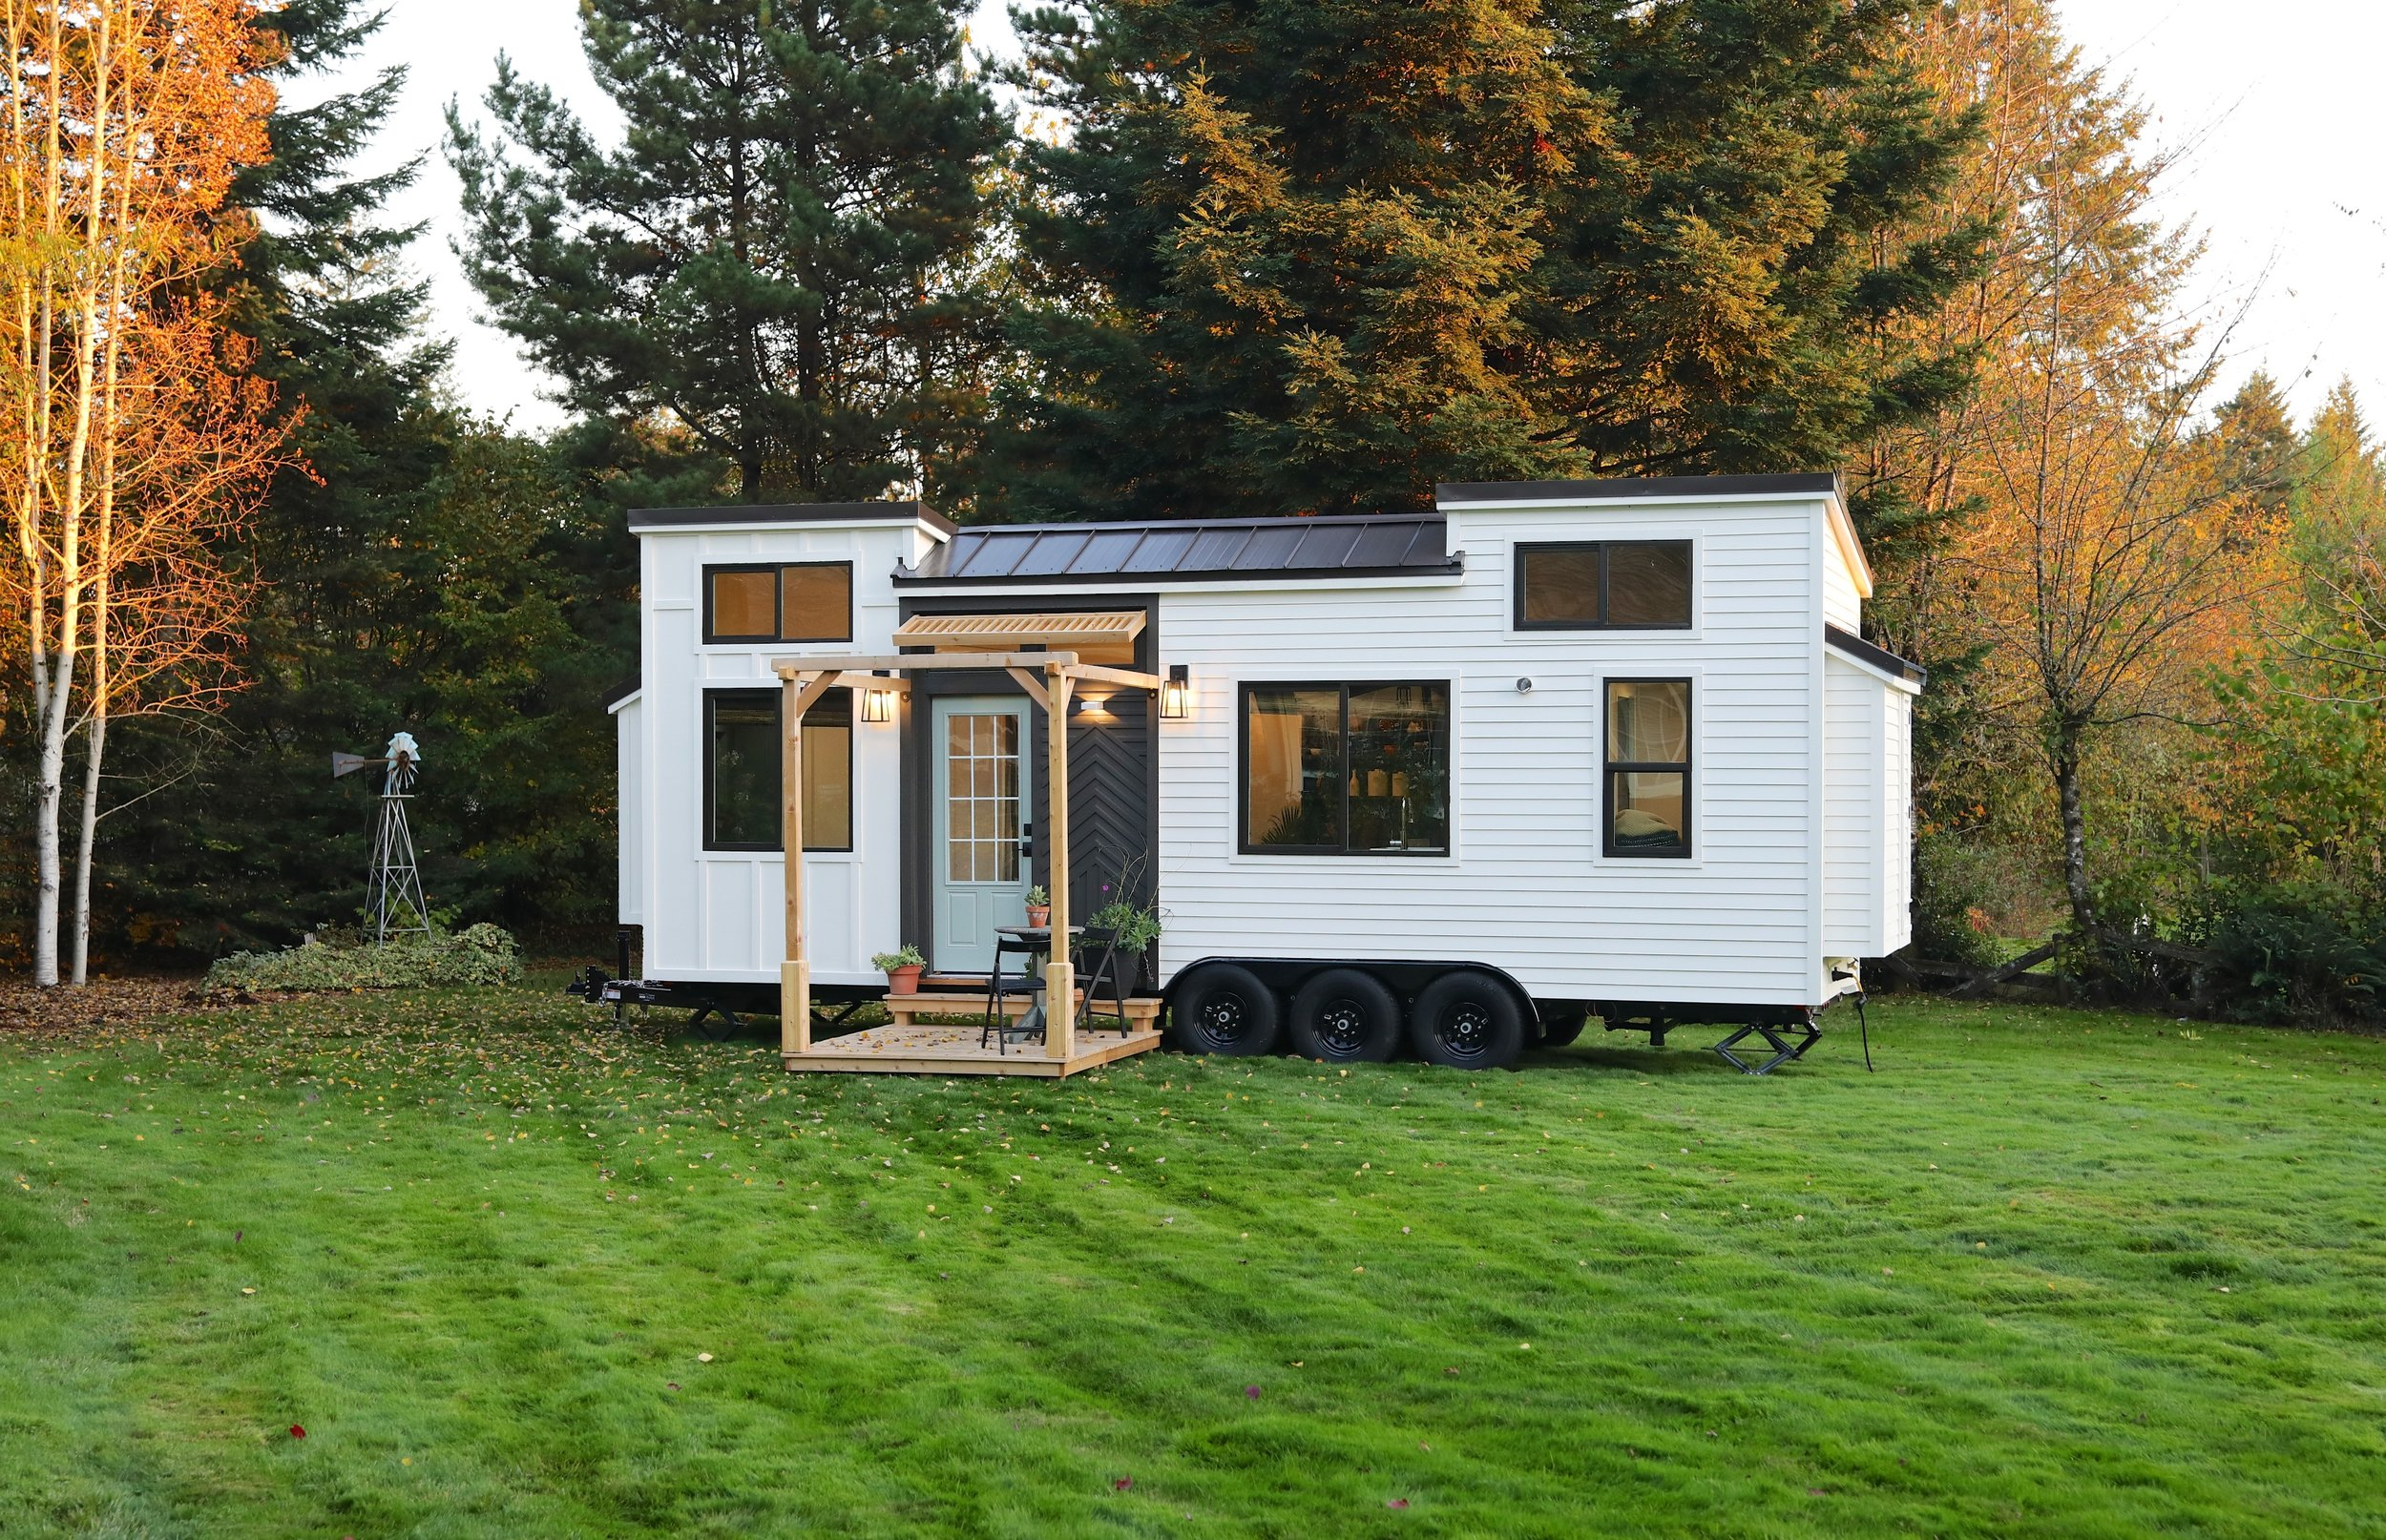 Copy of Pacific Harmony Tiny Home by Handcrafted Movement